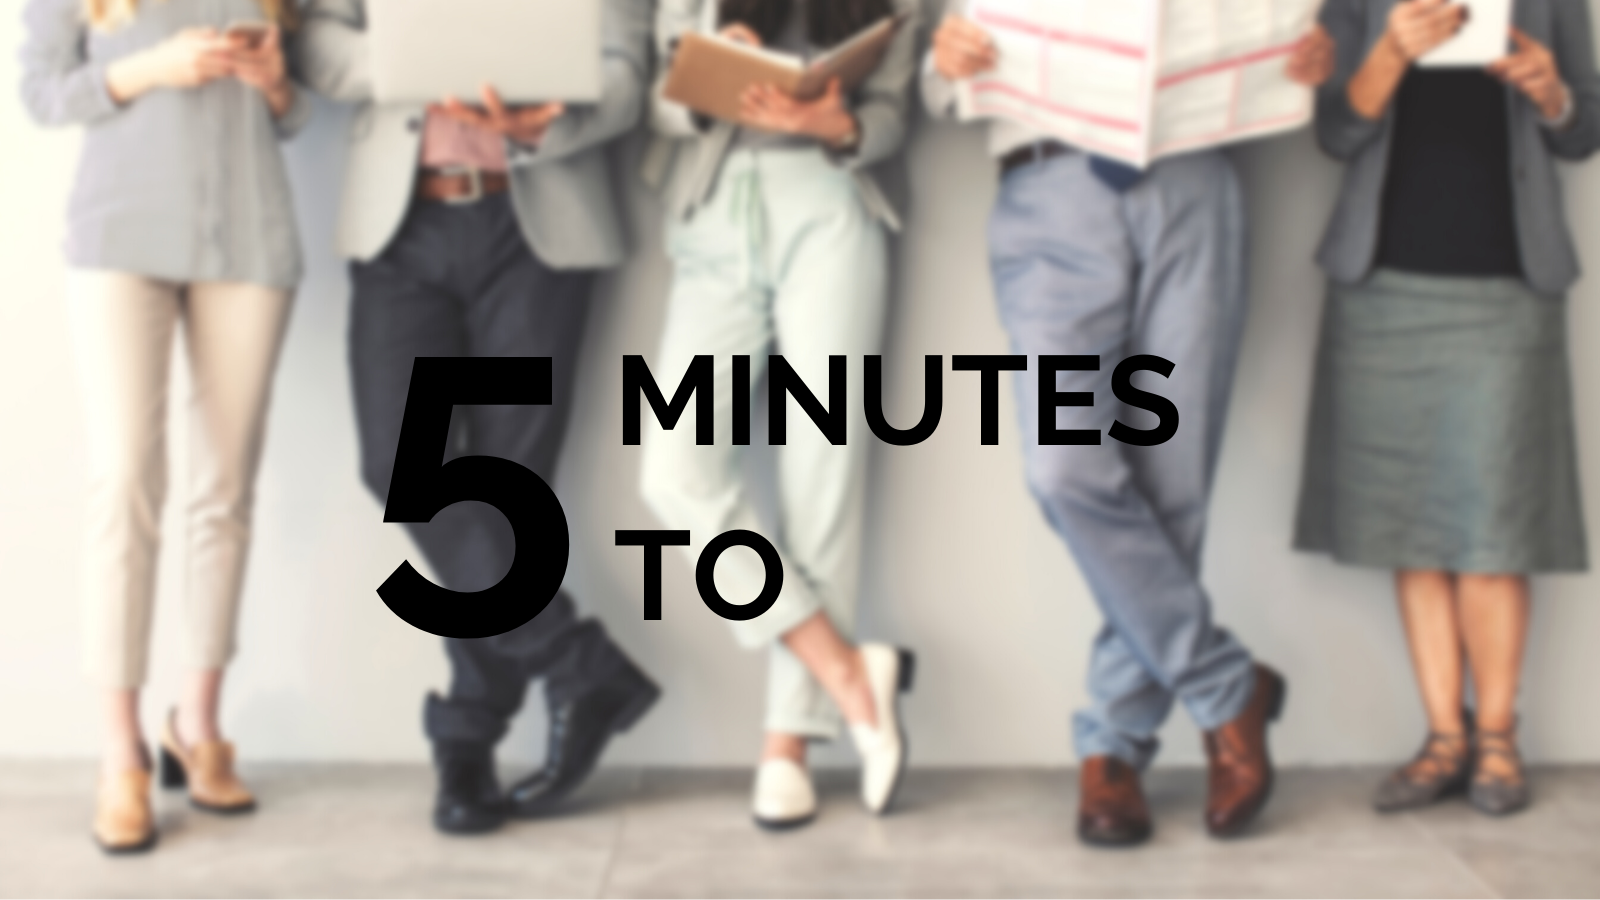 5 Minutes To : Creating Buyer Personas